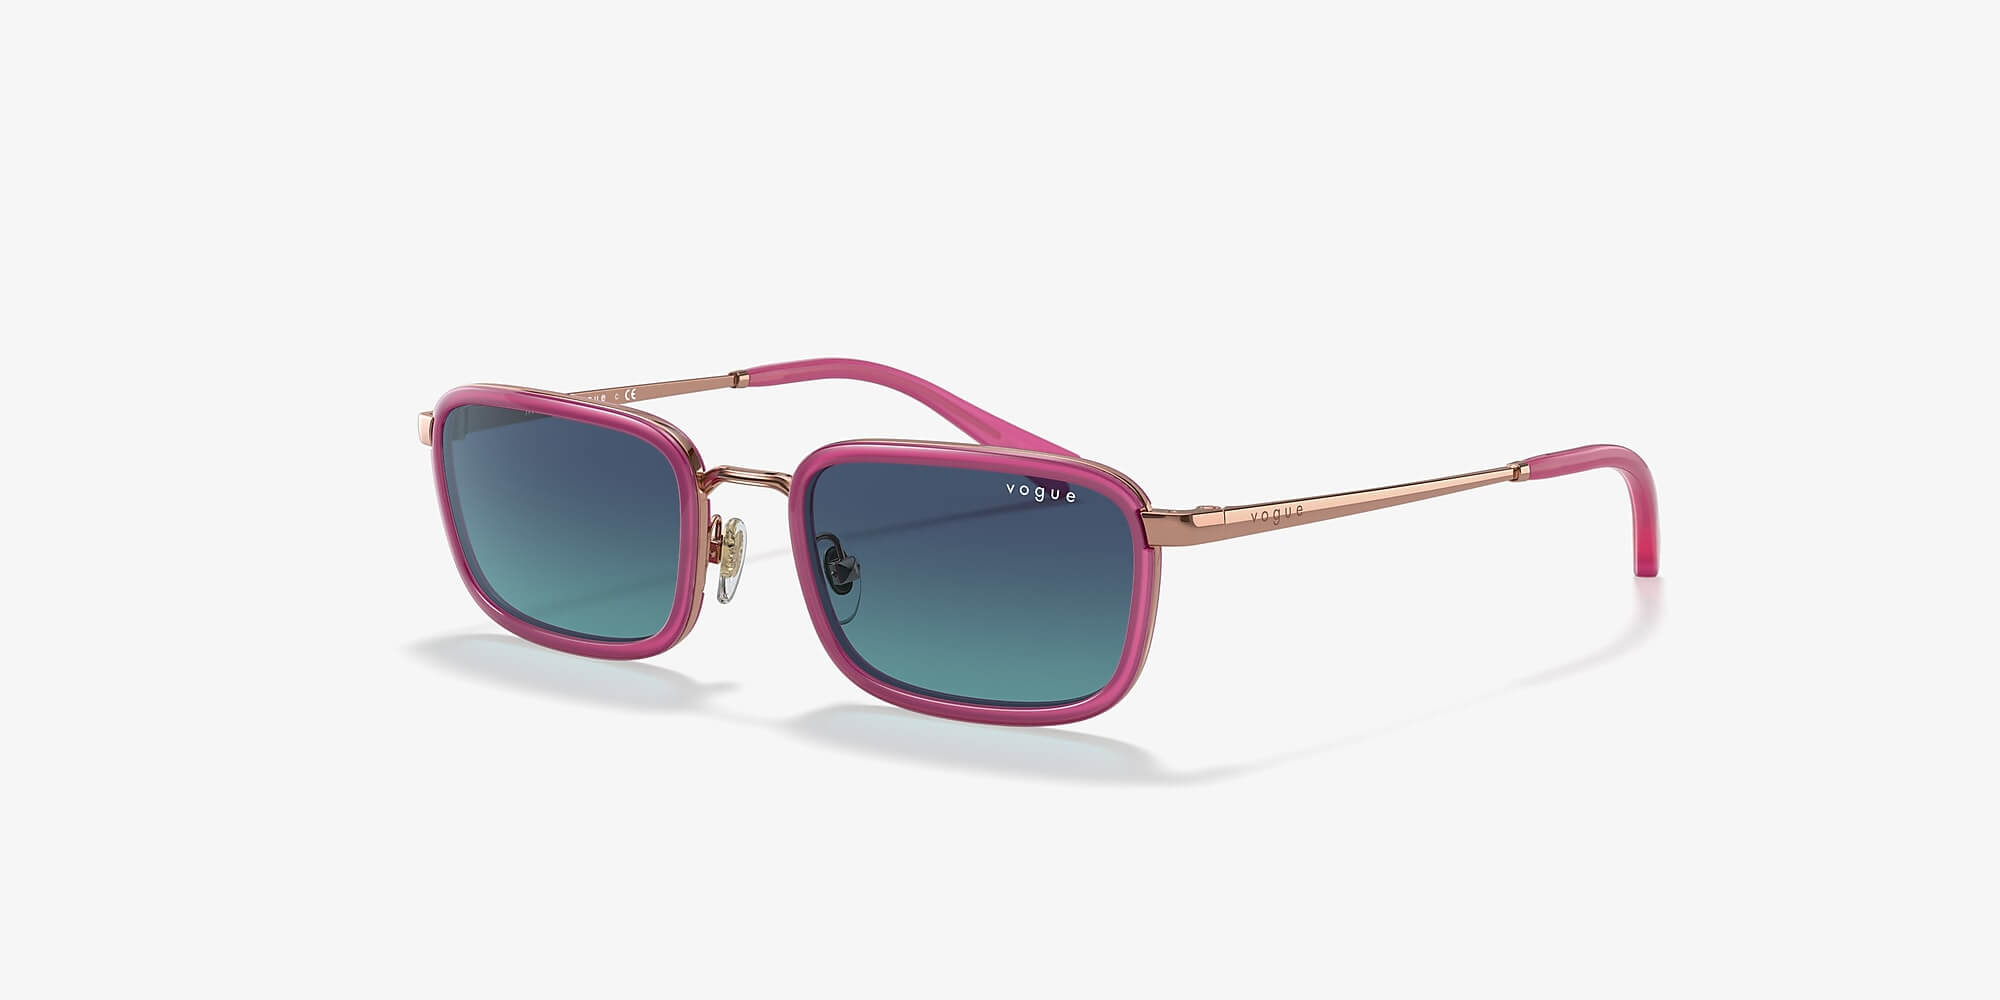 vintage pink vogue sunglasses on a white background